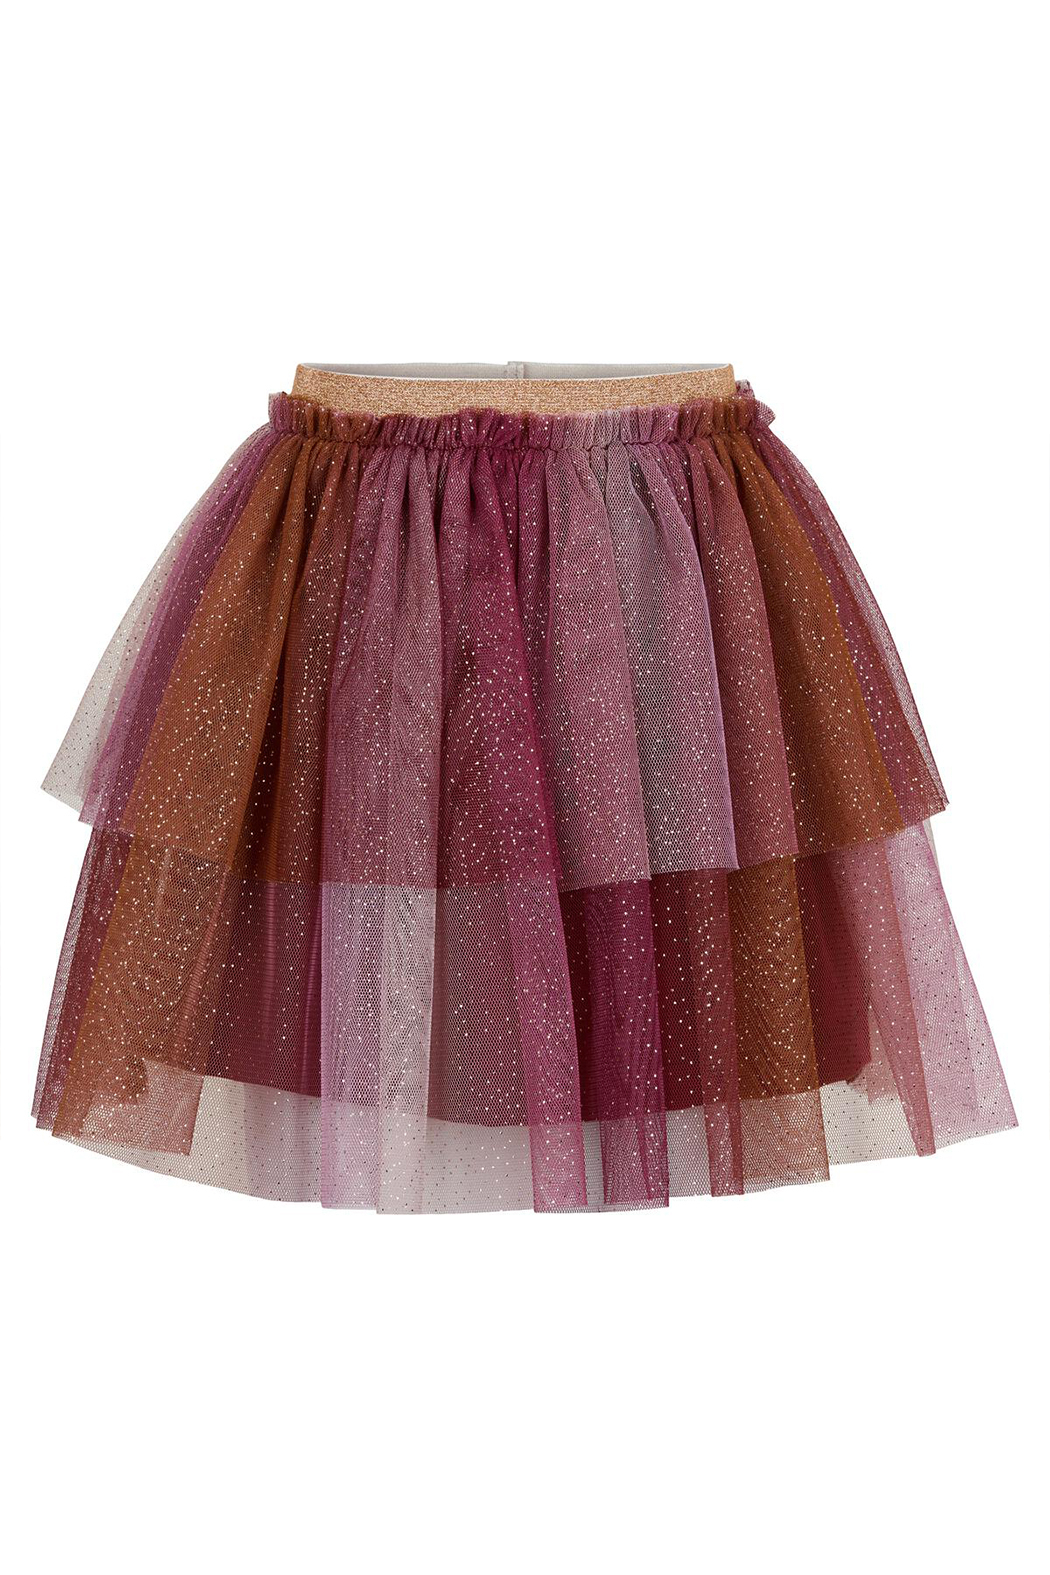 Minymo Tulle Skirt With Glitter - Rhododendron - Main Image